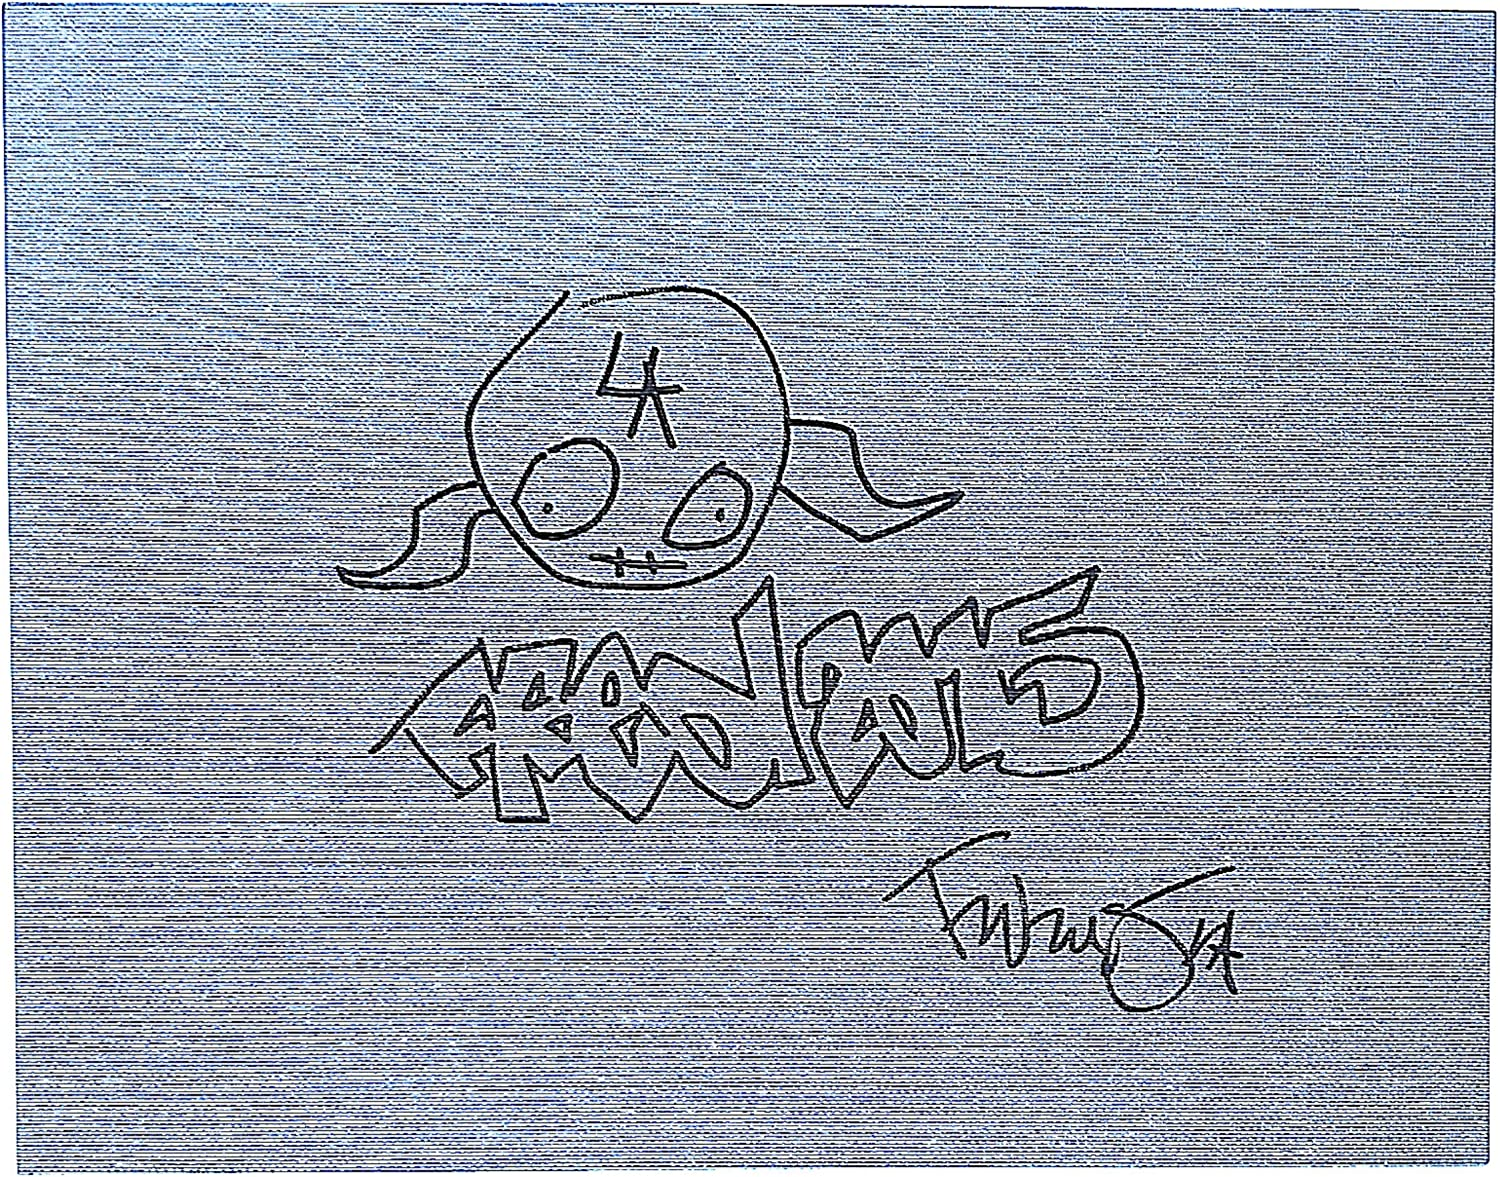 Fred Durst of Limp Bizkit Signed Autographed Artwork 1 Surprise price on Sketch Low price